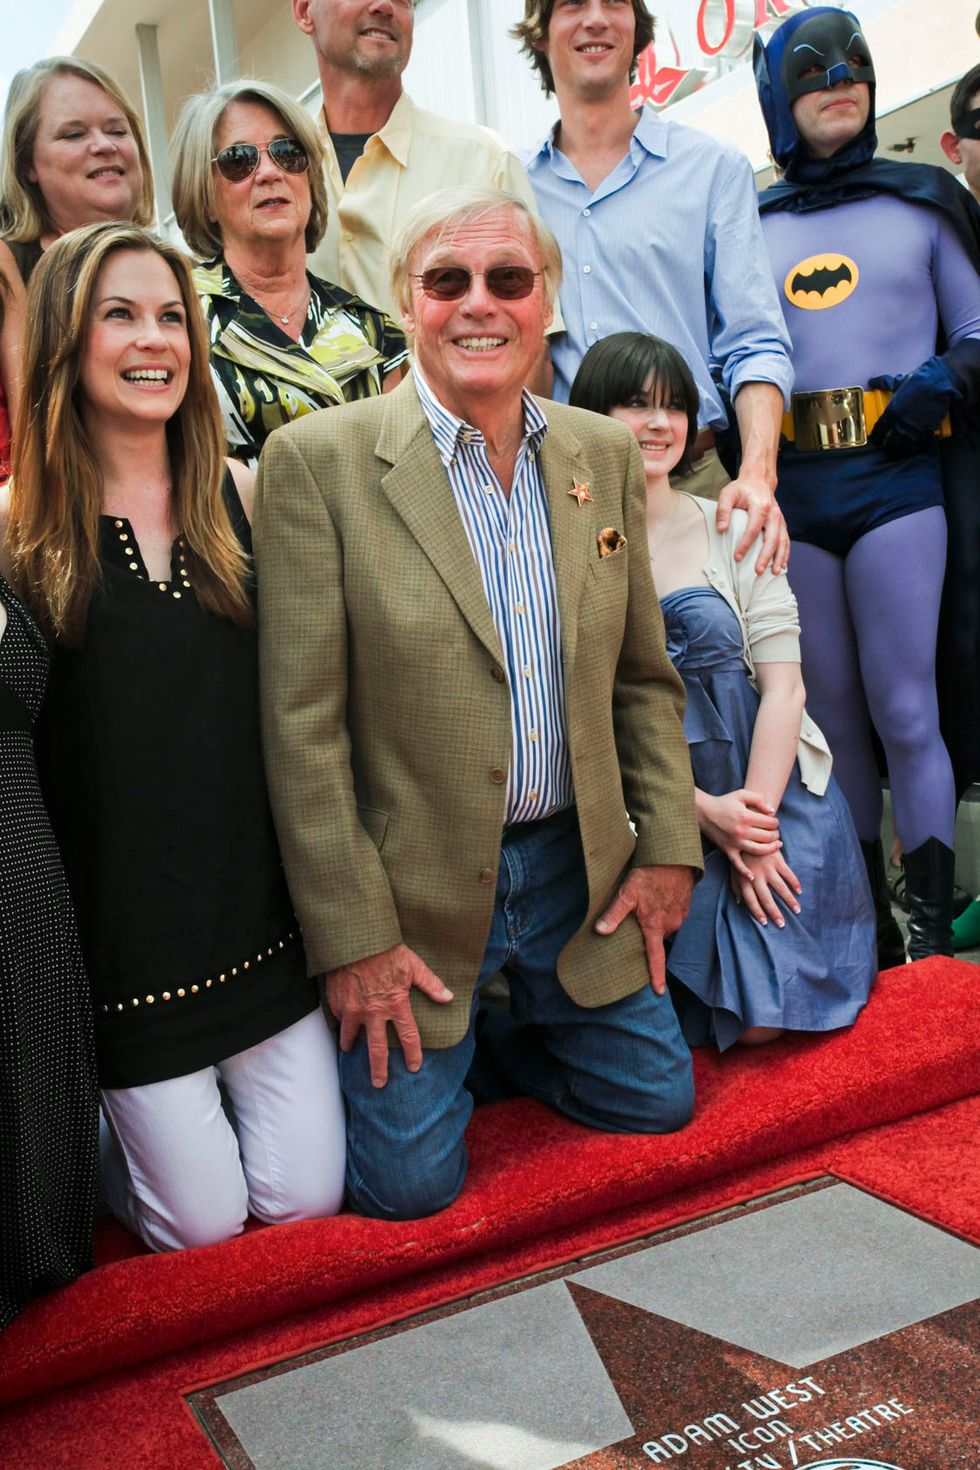 West Coast Report: Zap! Pow! Wham! A New Star for Adam West